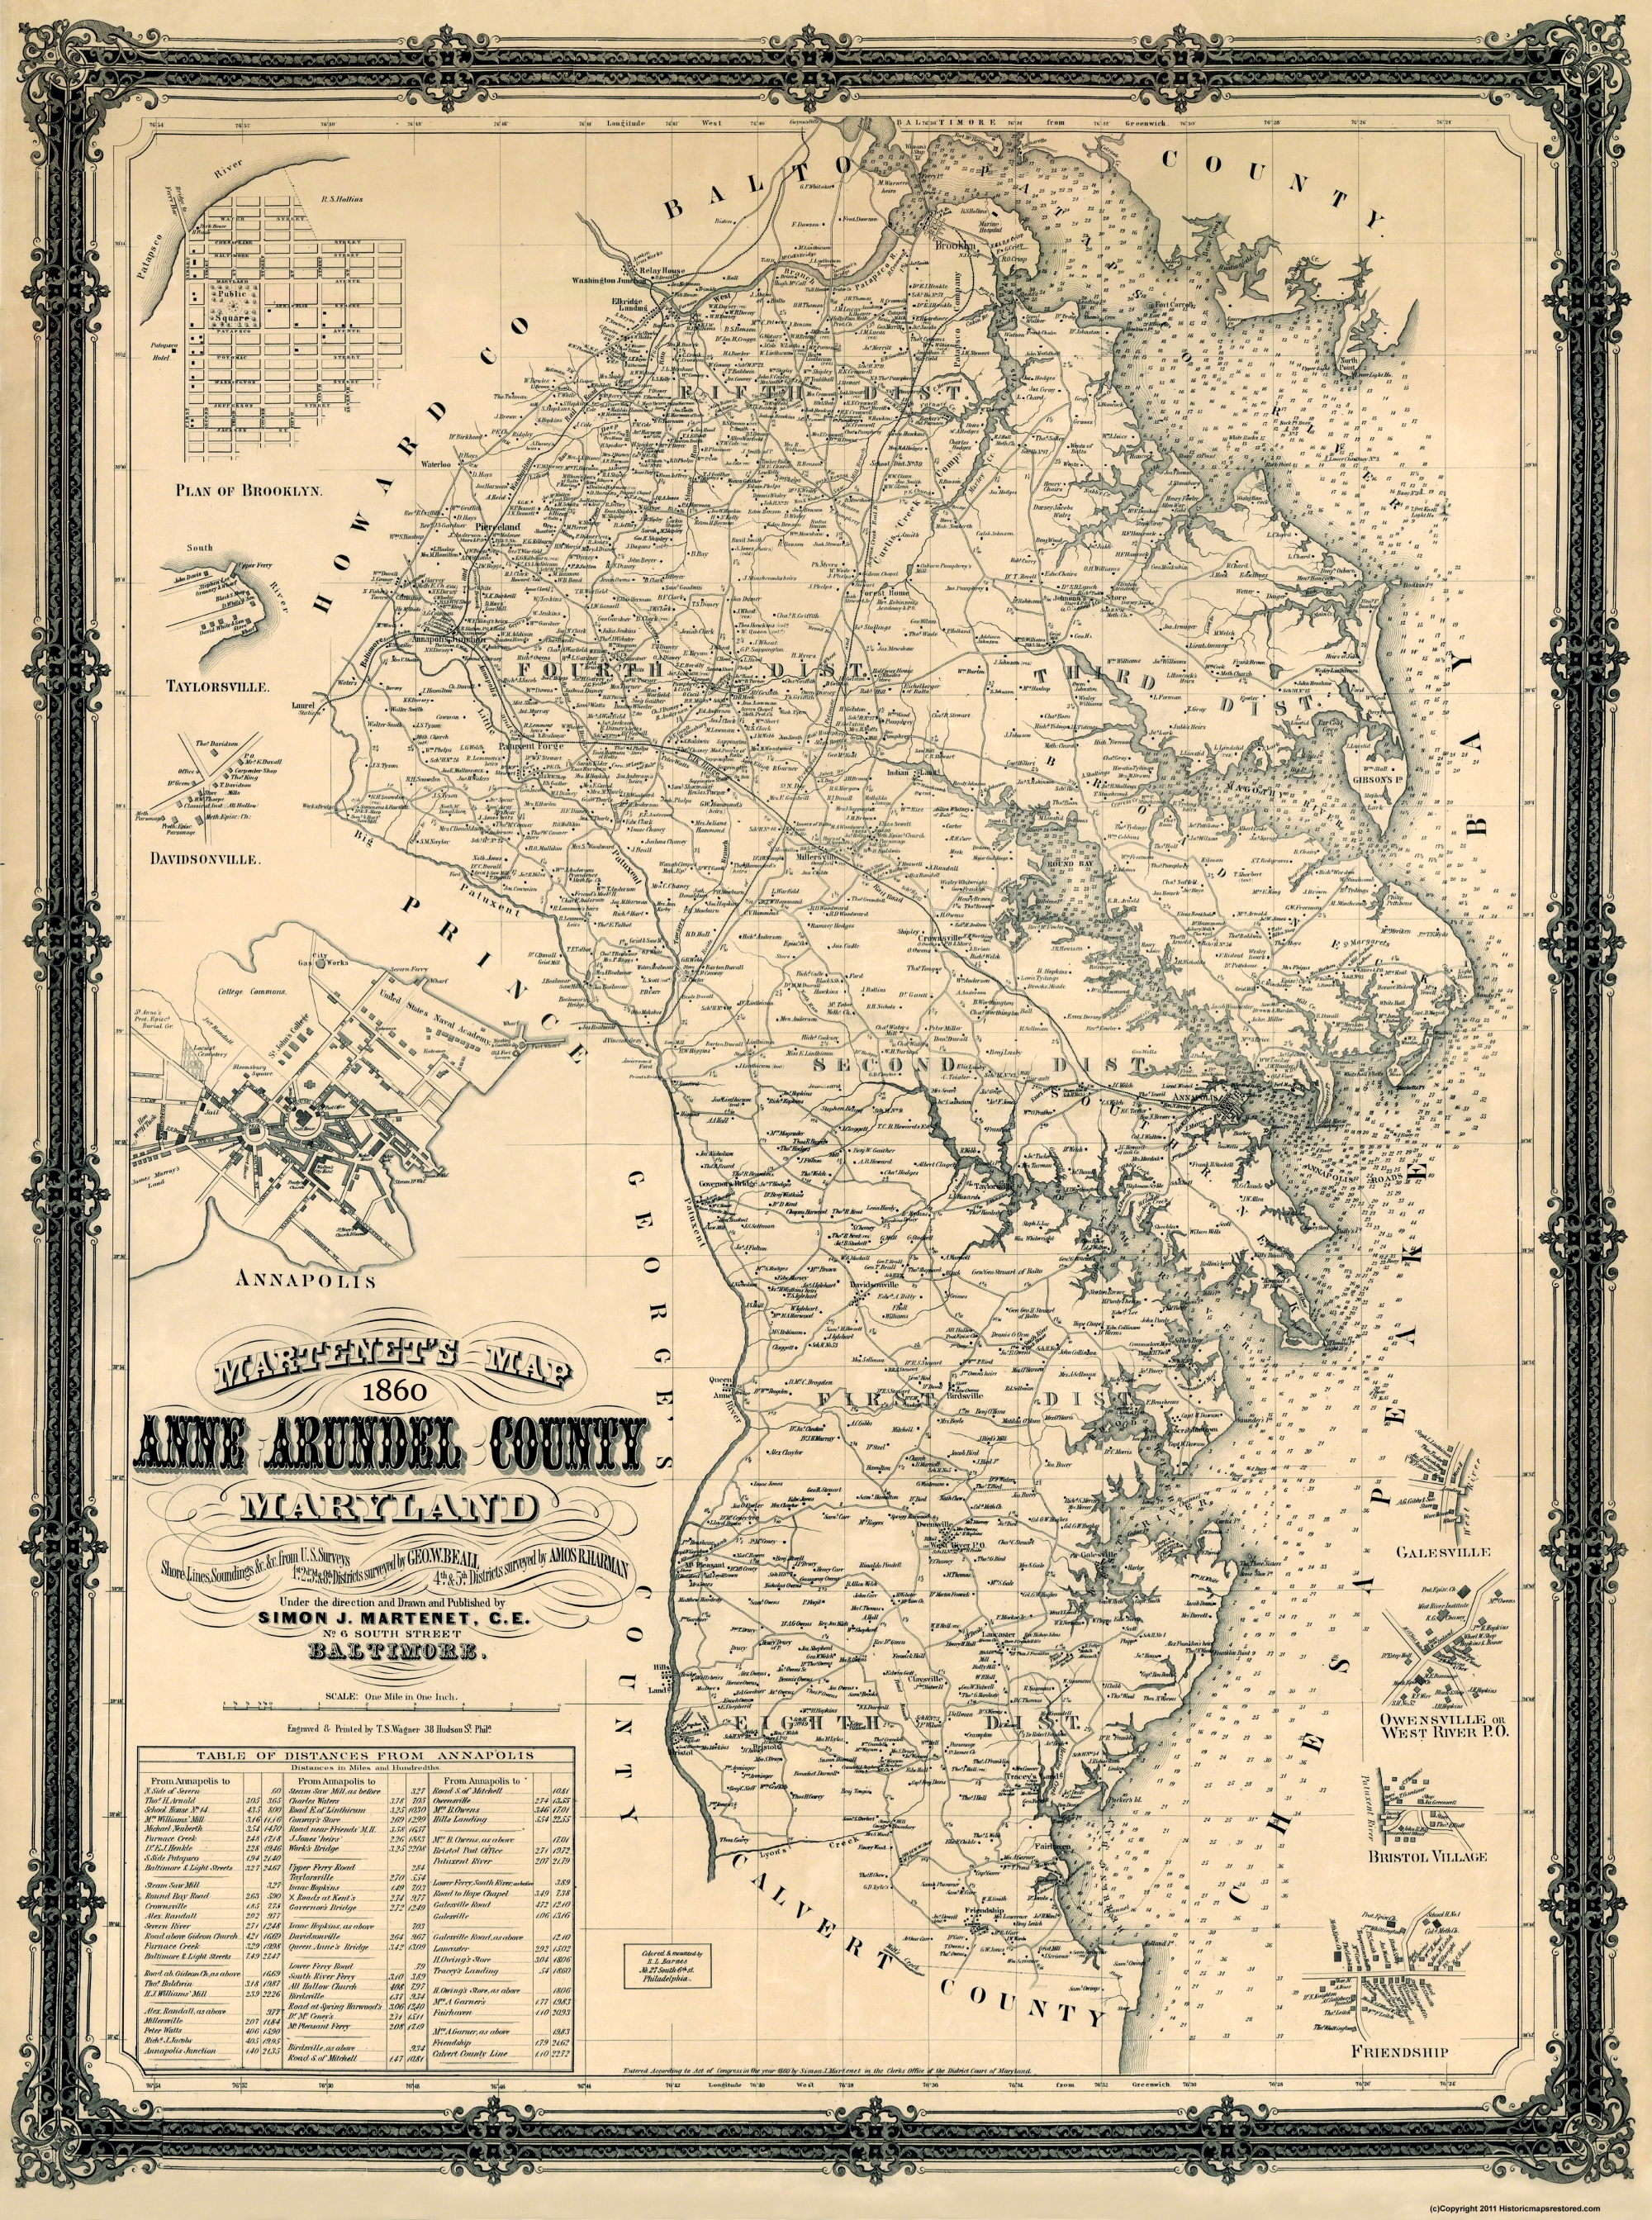 Old County Map Anne Arundel Maryland Landowner - Maryland county map